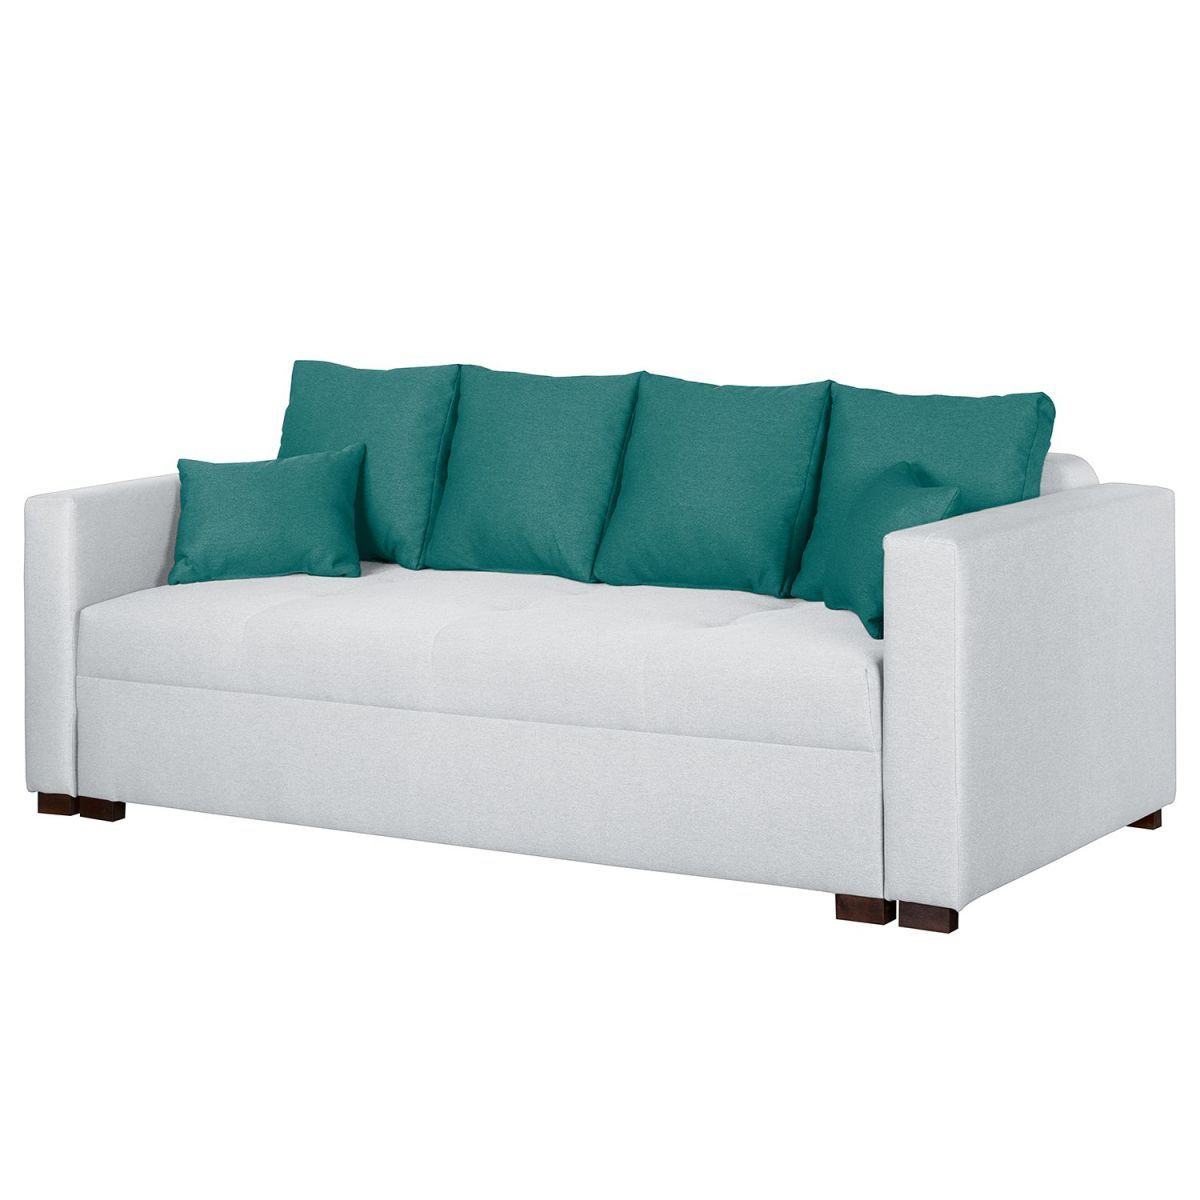 Couchtisch Liam Fredriks Modern Living Affordable Free Mobel Frederik Am Of Mobel